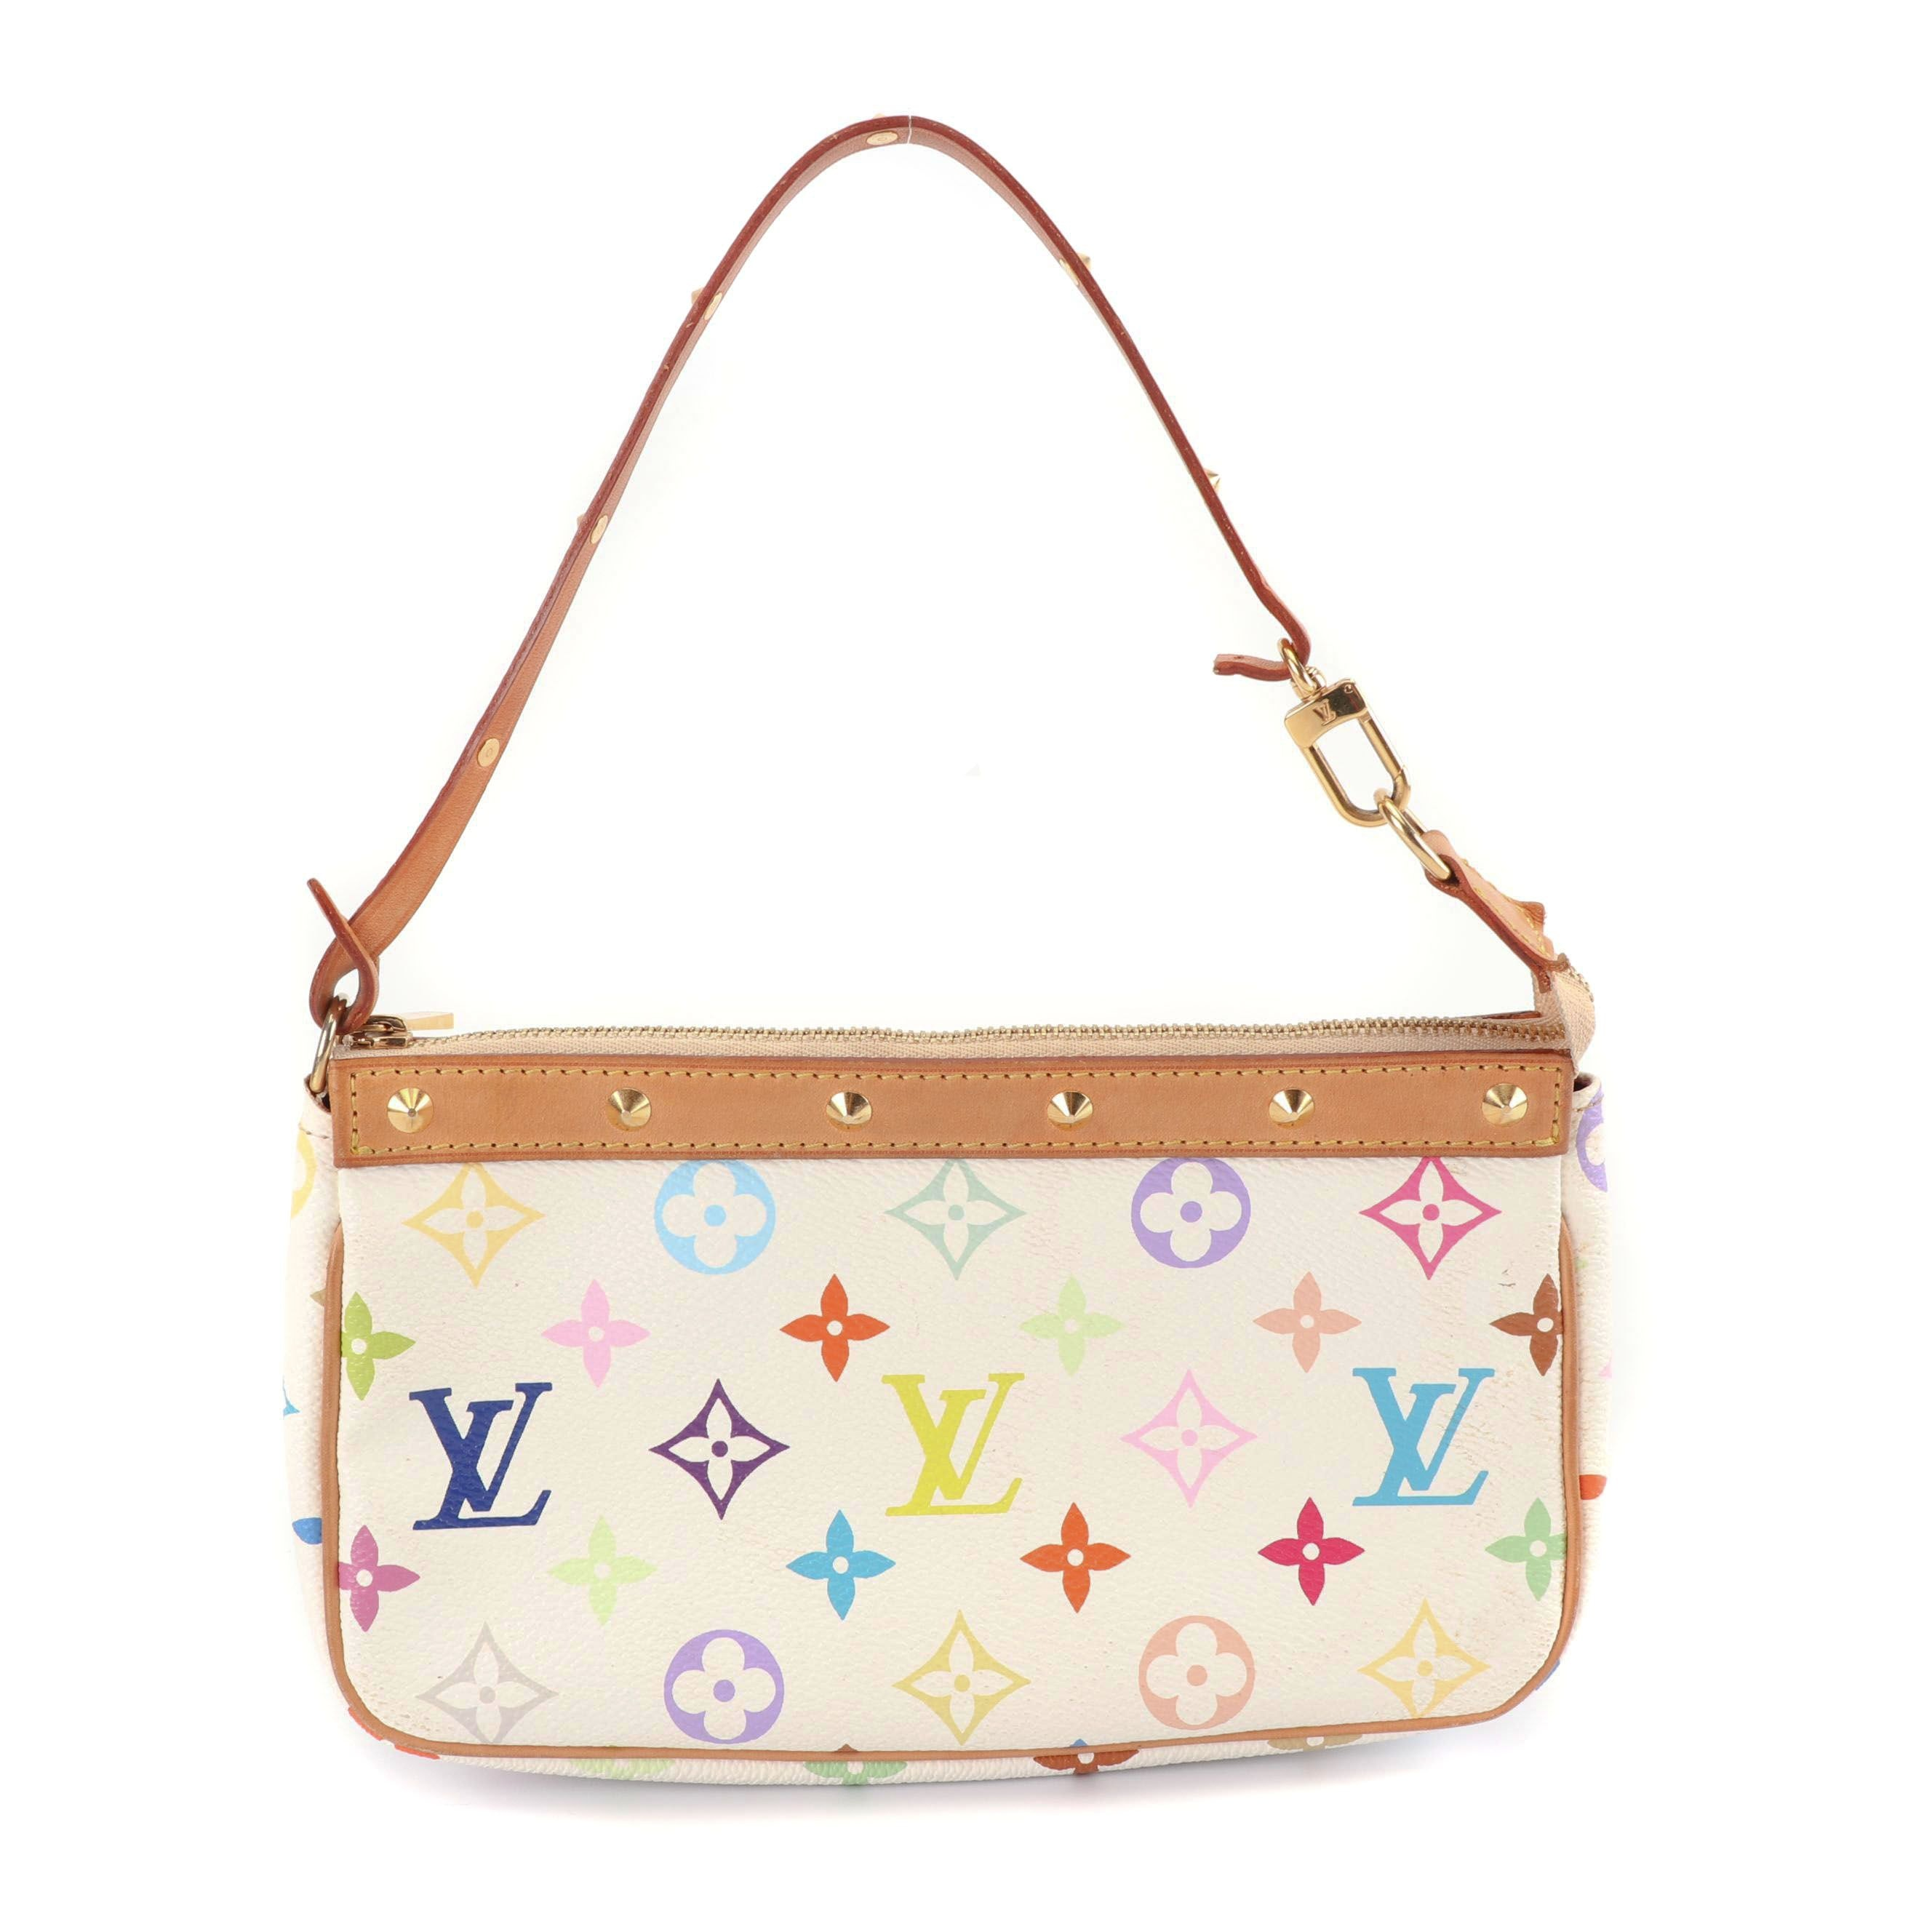 Louis Vuitton Monogram Multicolore Coated Canvas and Leather Pochette, 2003